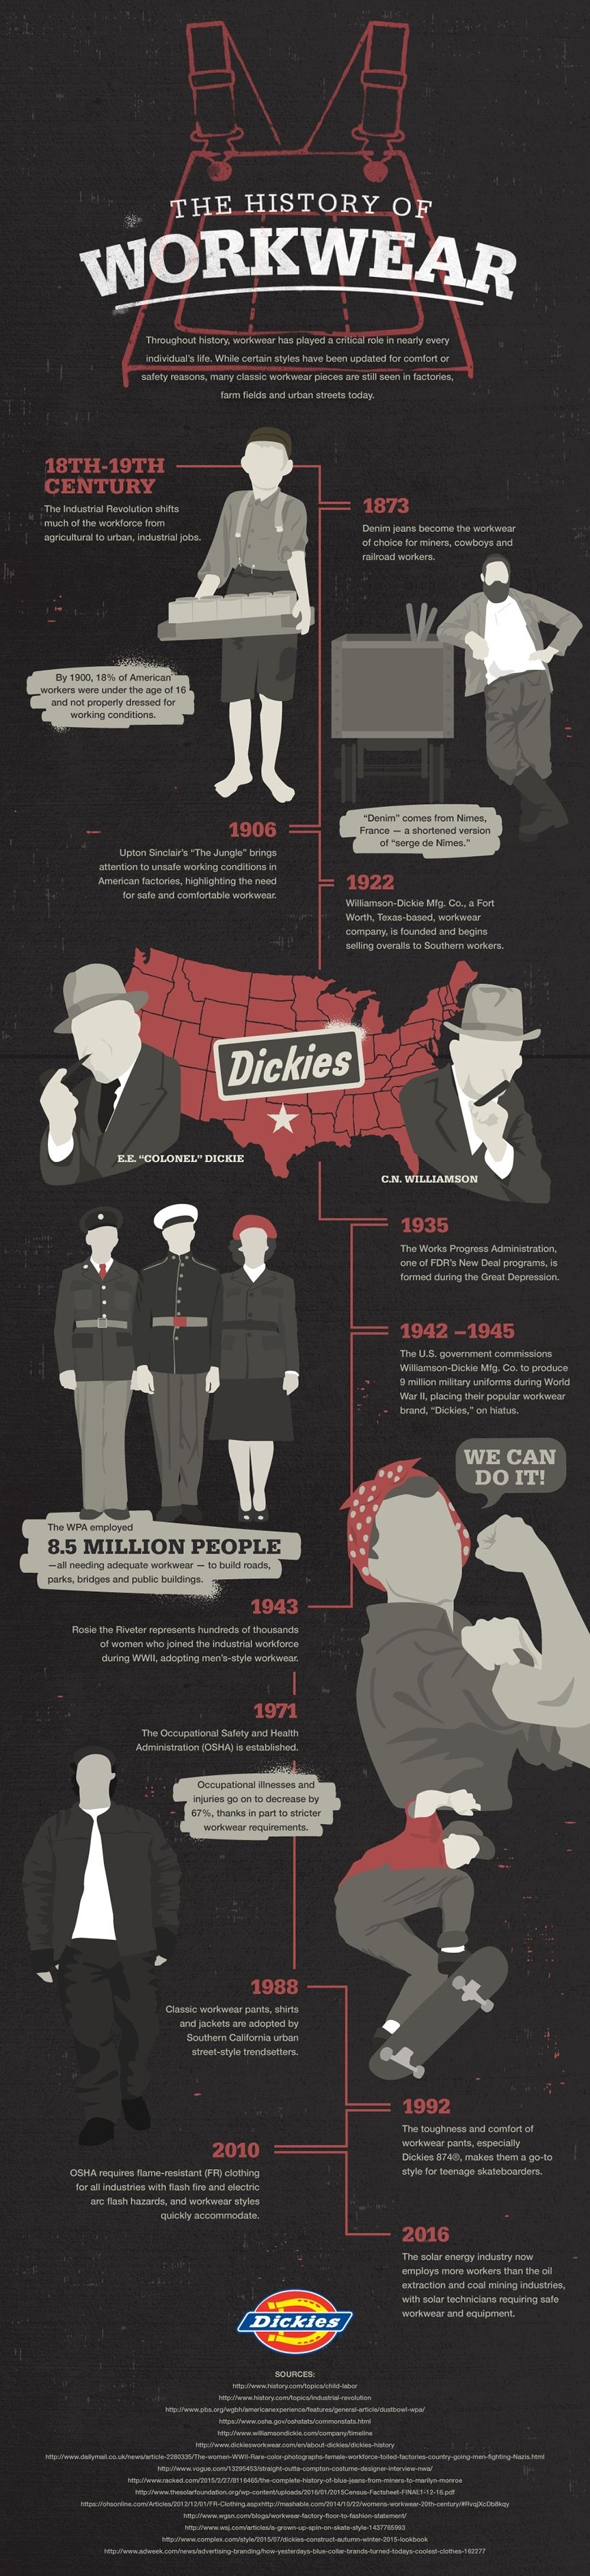 The History of Workwear #Infographic